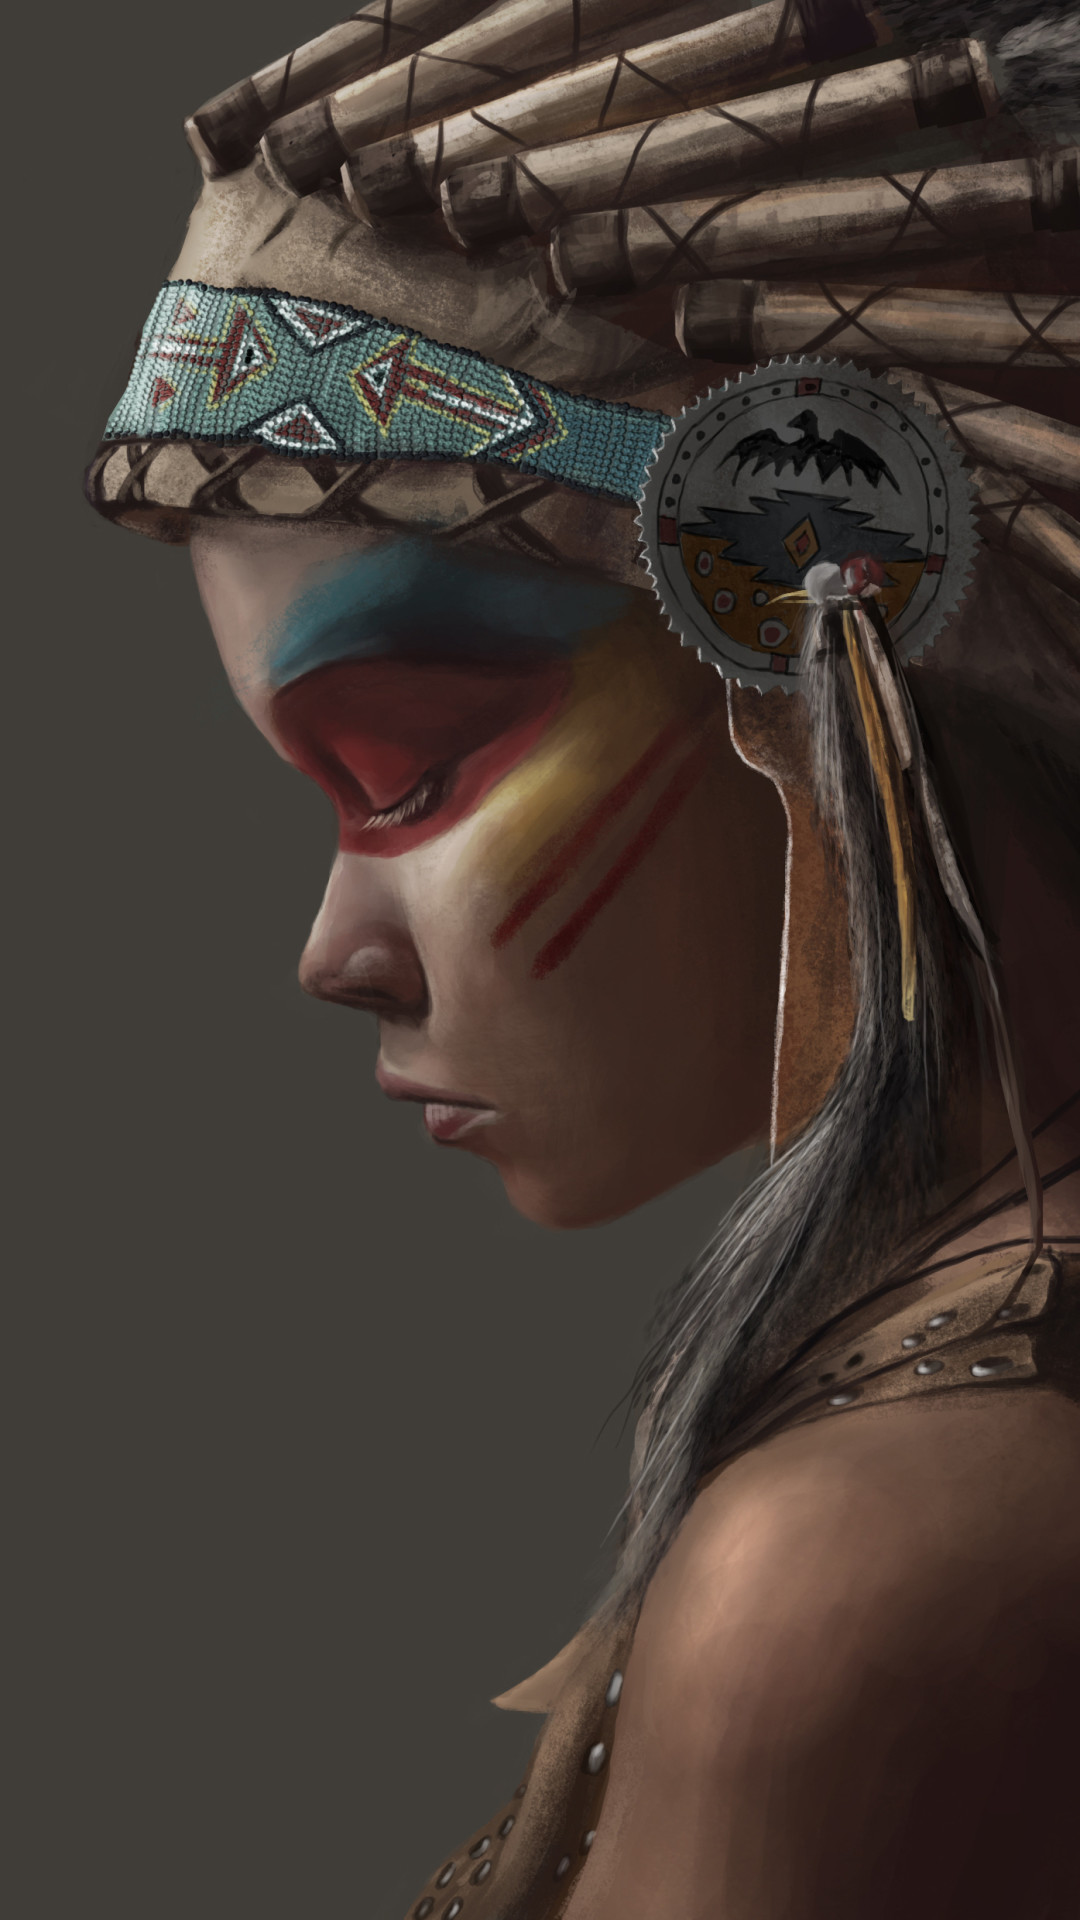 Native American Wallpapers 72 Images HD Wallpapers Download Free Images Wallpaper [1000image.com]